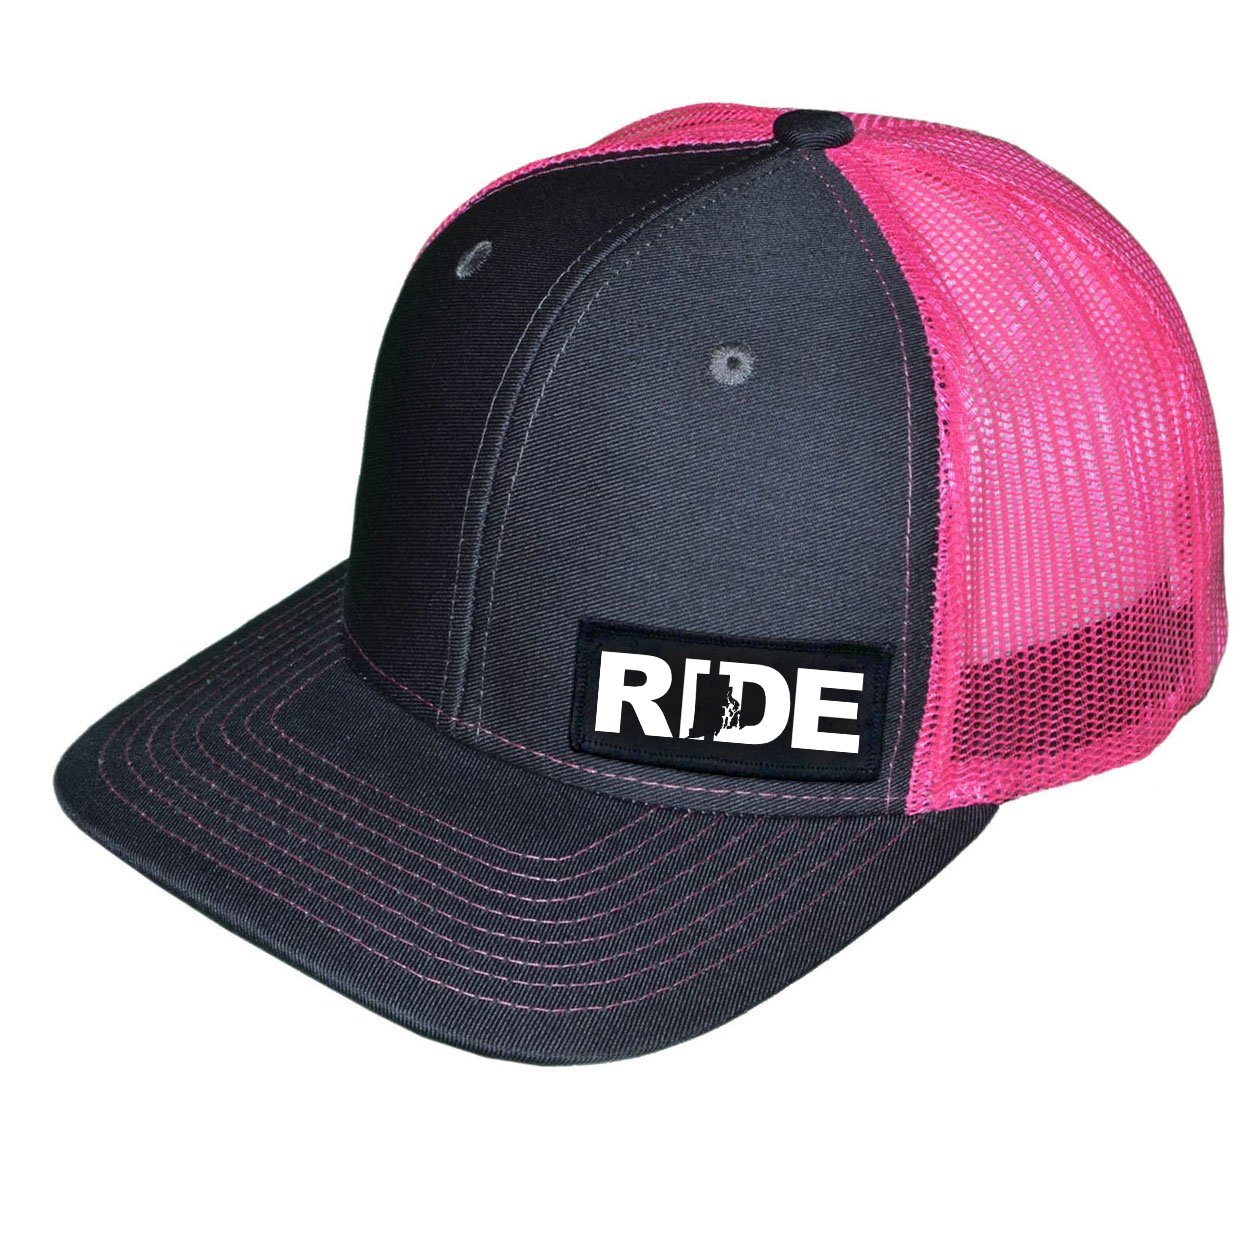 Ride Rhode Island Night Out Woven Patch Snapback Trucker Hat Dark Gray/Neon Pink (White Logo)